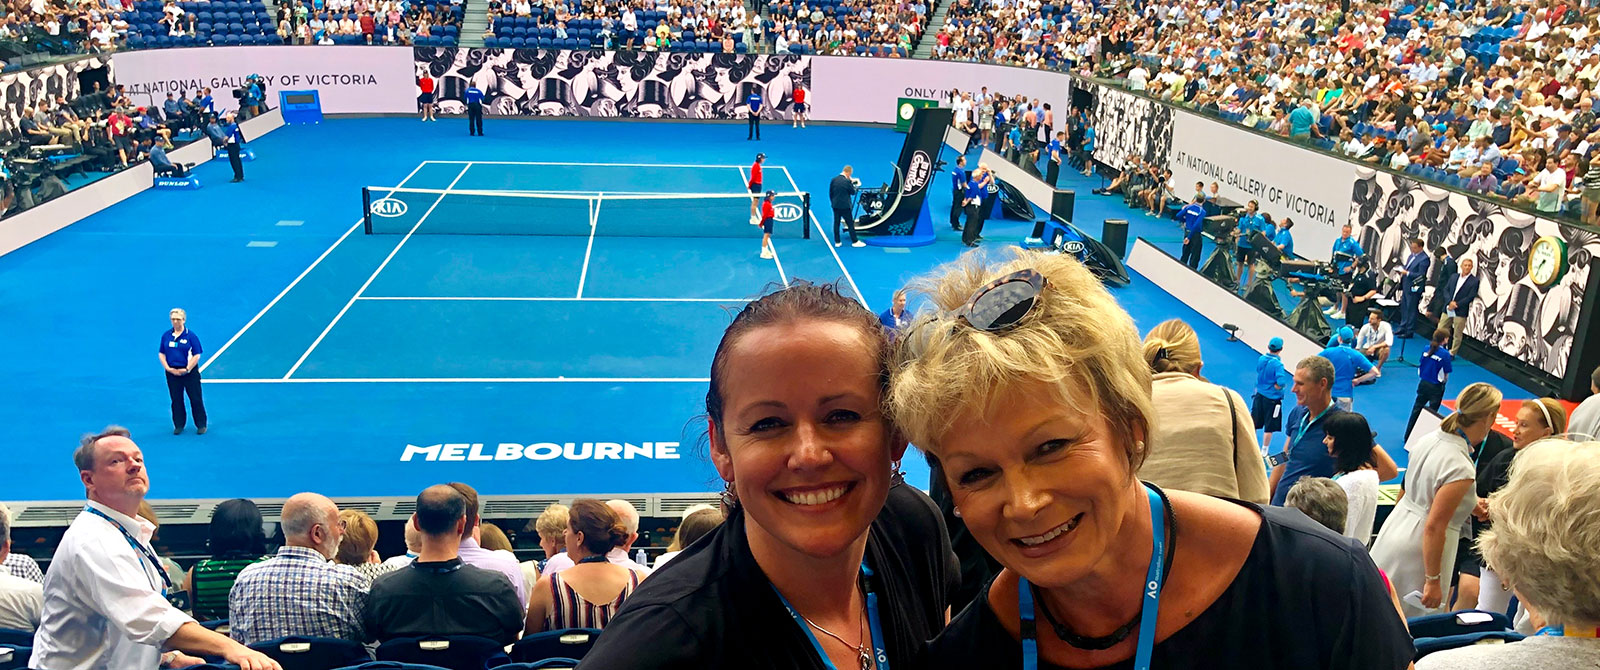 Corinne and Rayoni in Melbourne at the Australian Open Tennis 2019